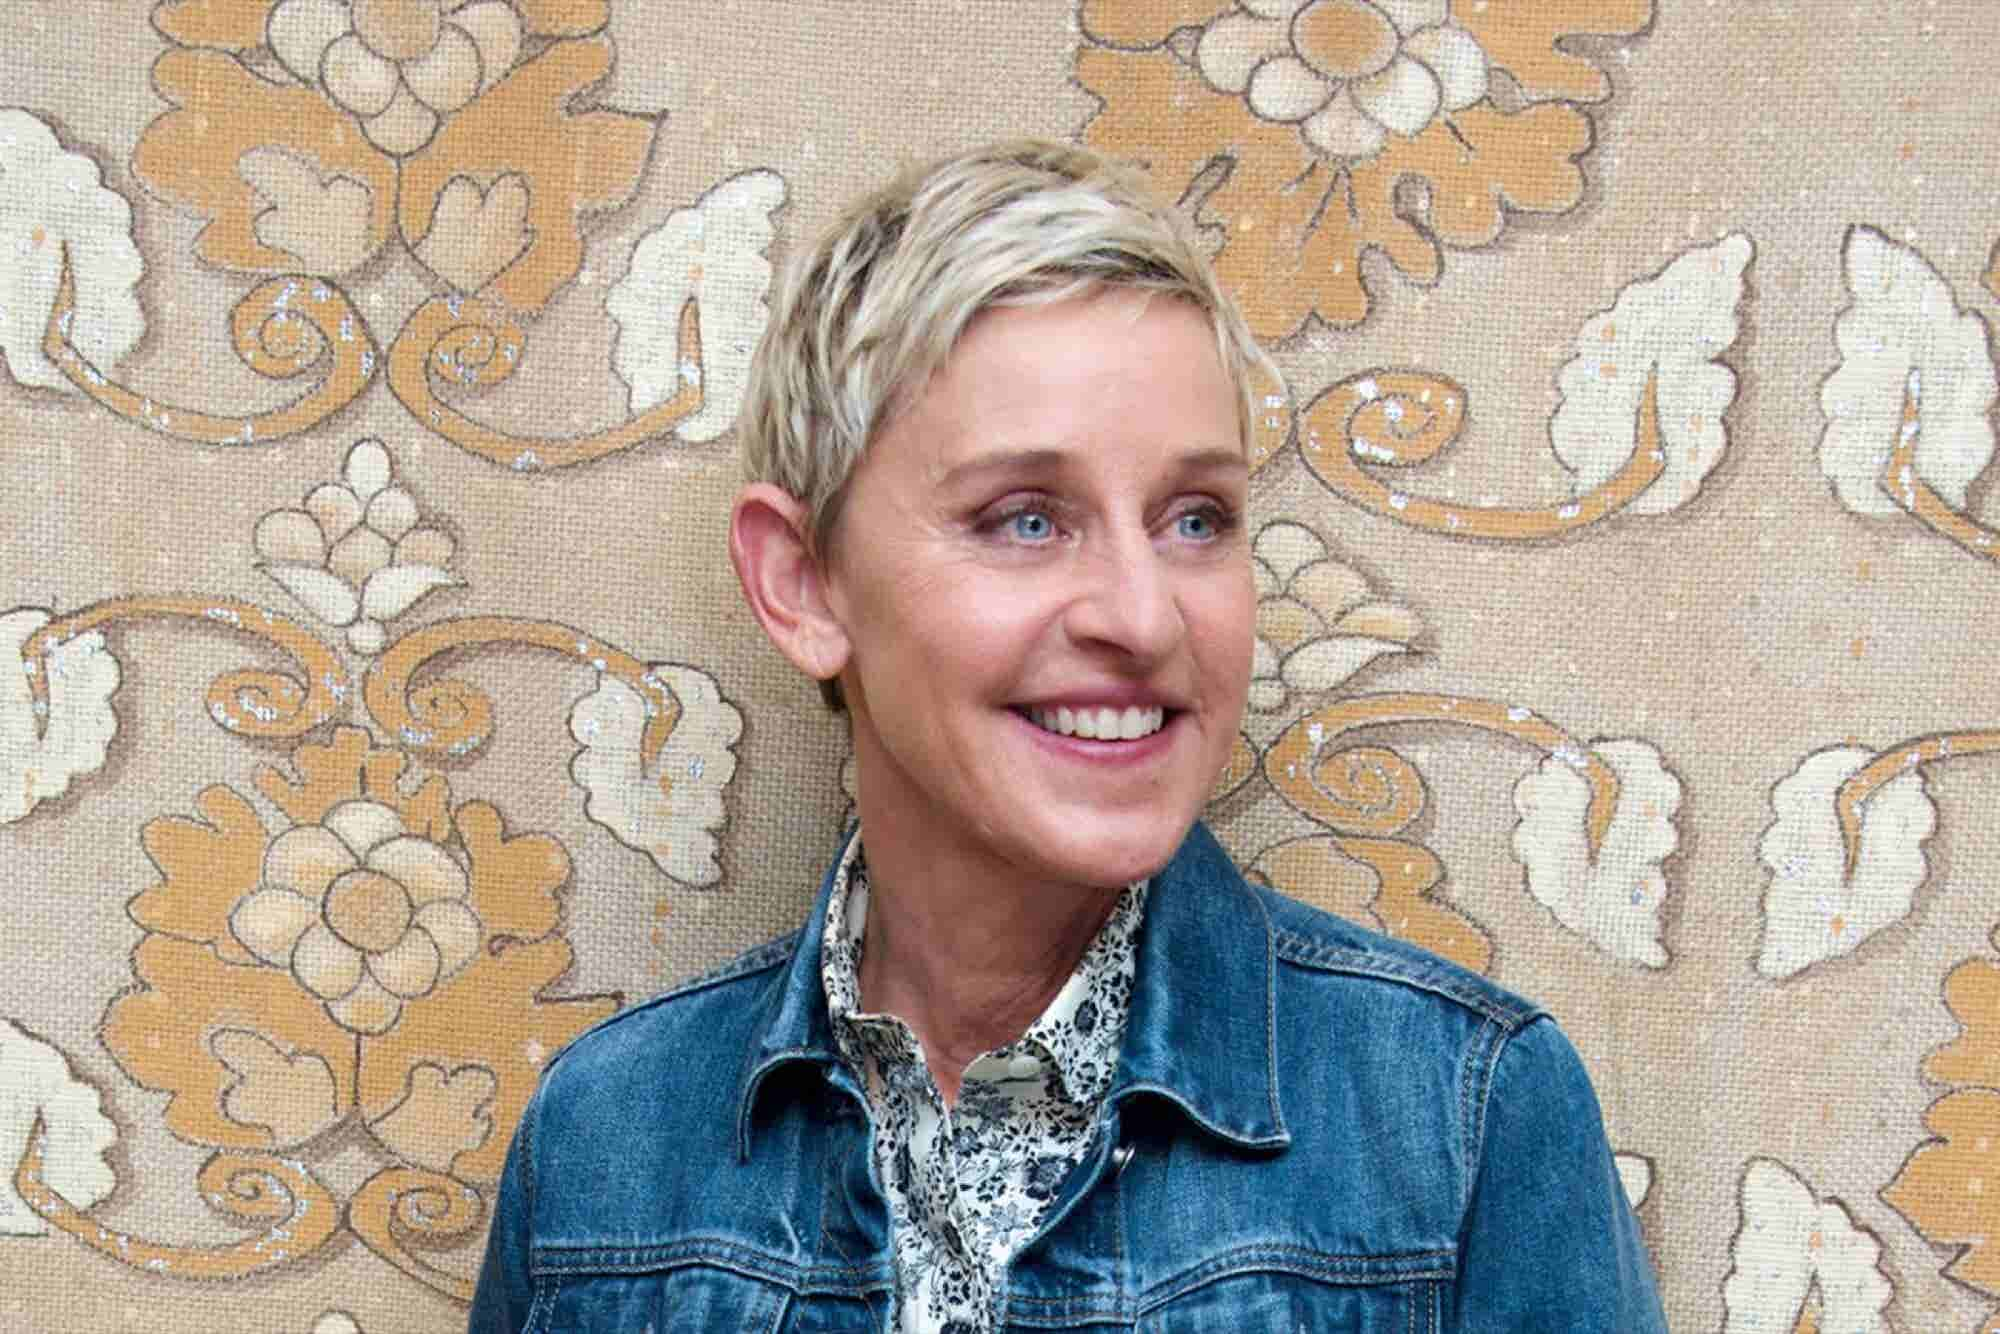 12 Upbeat Ellen DeGeneres Quotes to Put You in a Good Mood